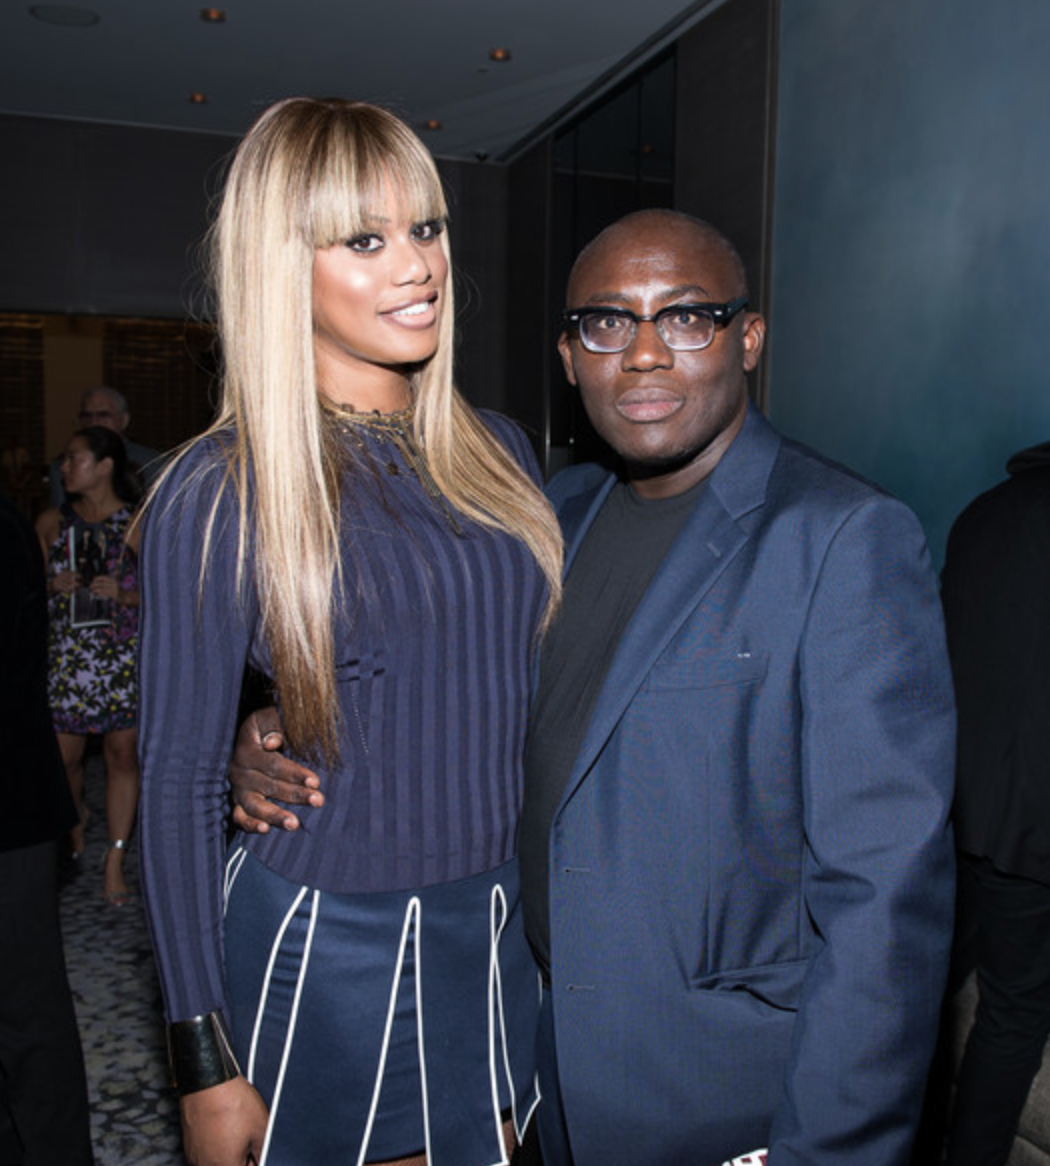 Laverne Cox at the 2014 Fashion Media Awards with Edward Enninful. Wearing Kenzo and Alexis Bittar jewelry